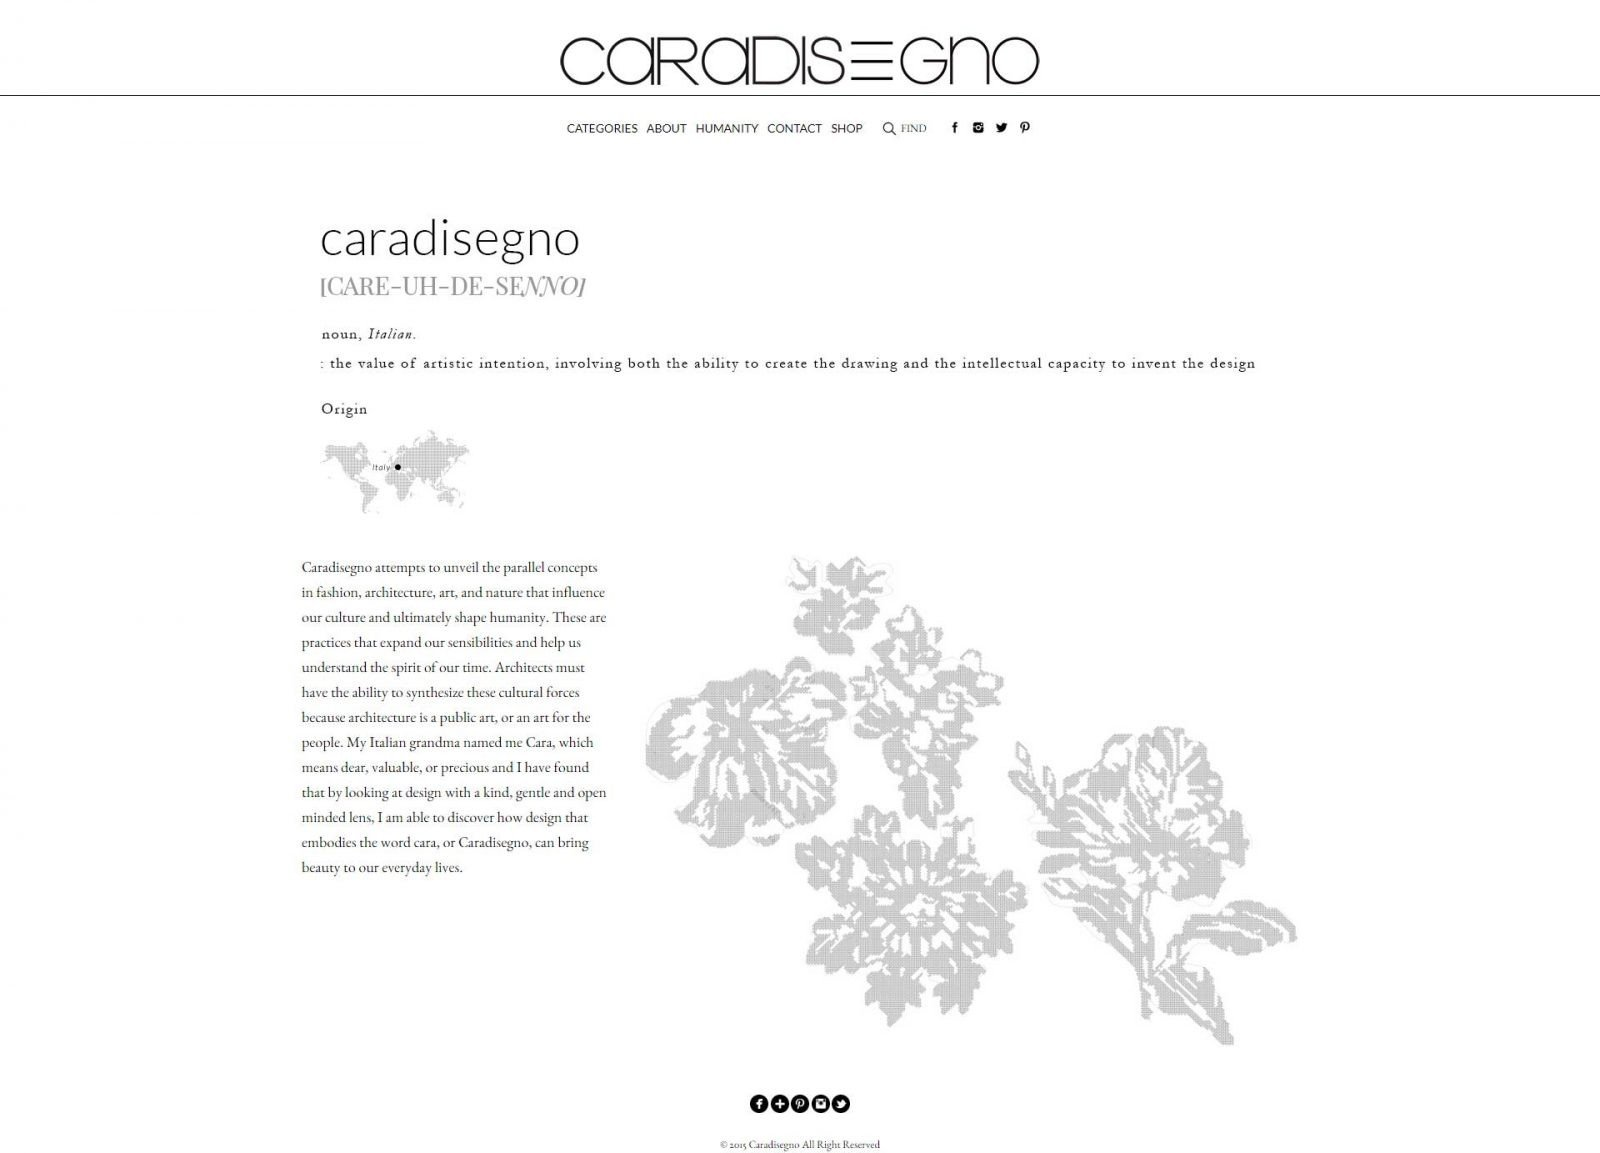 Caradisegno-Website-Design-Project-About-page